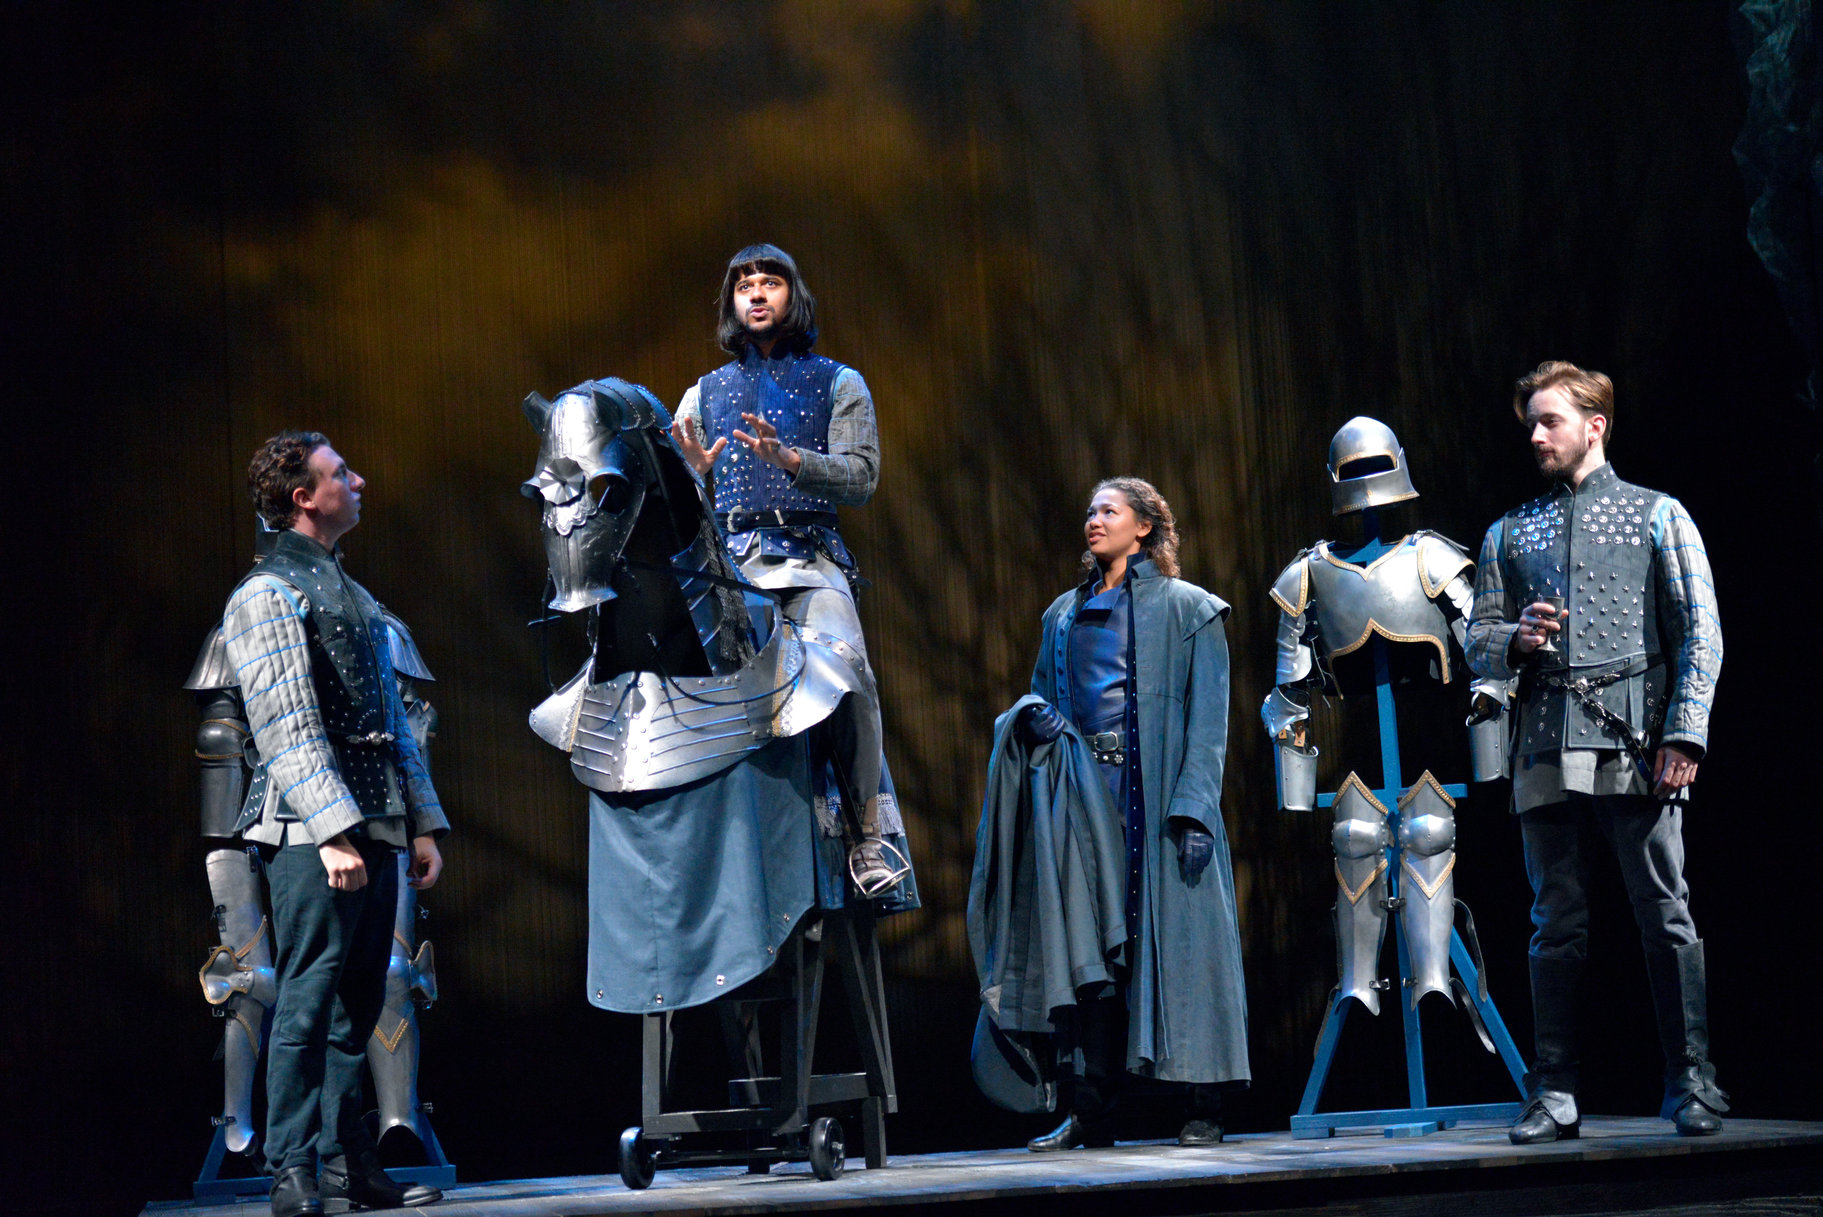 Henry V_ 2015_ the Duke of Orleans_ the Dauphin_ Rambures and the Constable of France_2015_Photo by Keith Pattison _c_ RSC_171477